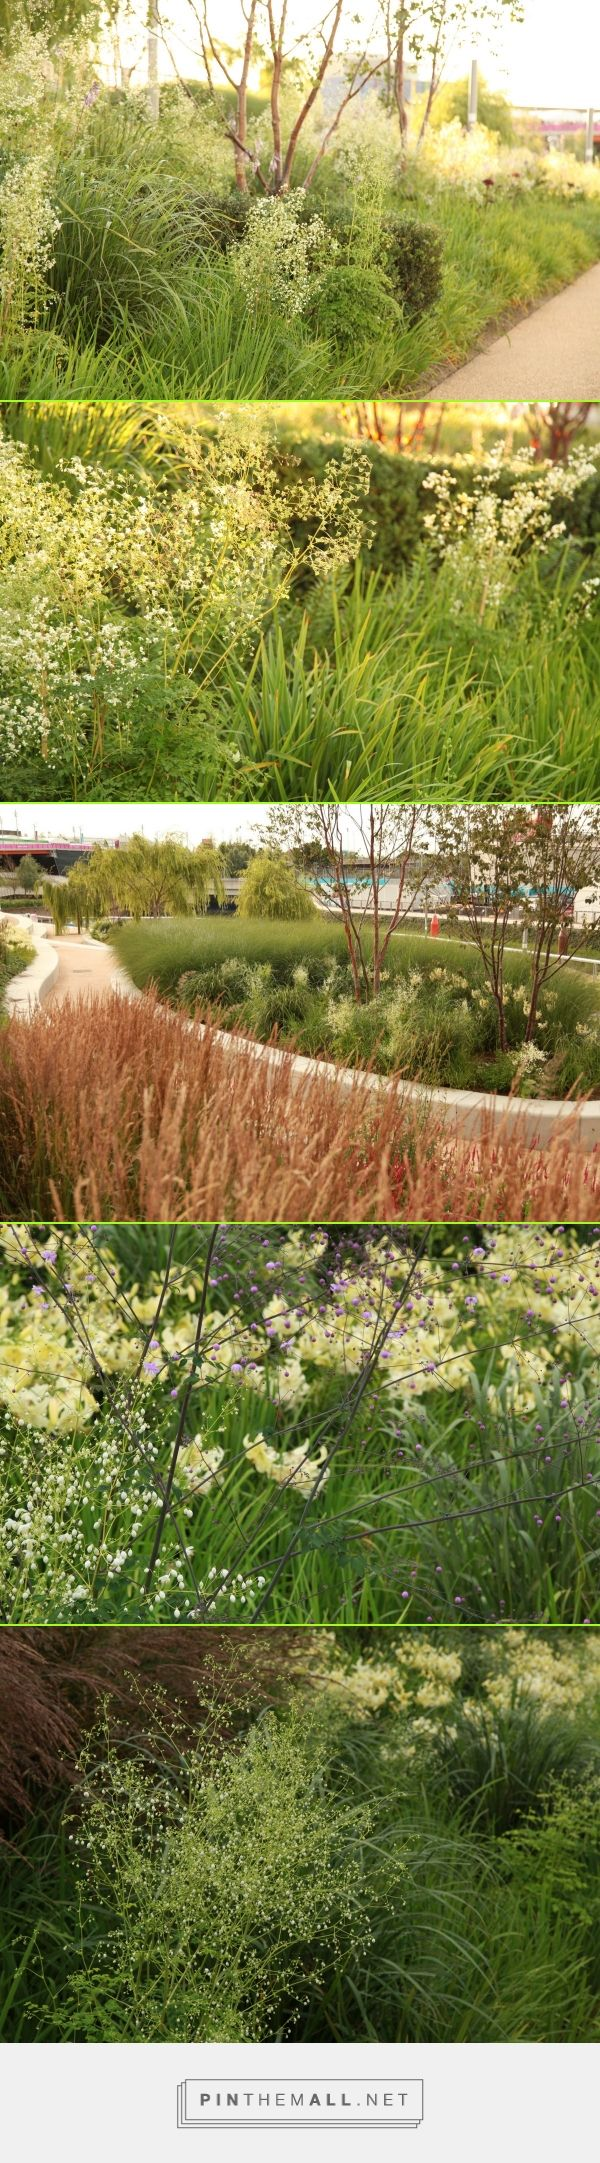 Sarah Price Landscapes   » Olympic Gardens Asia  http://sarahpricelandscapes.com/?page_id=54 - created via https://pinthemall.net